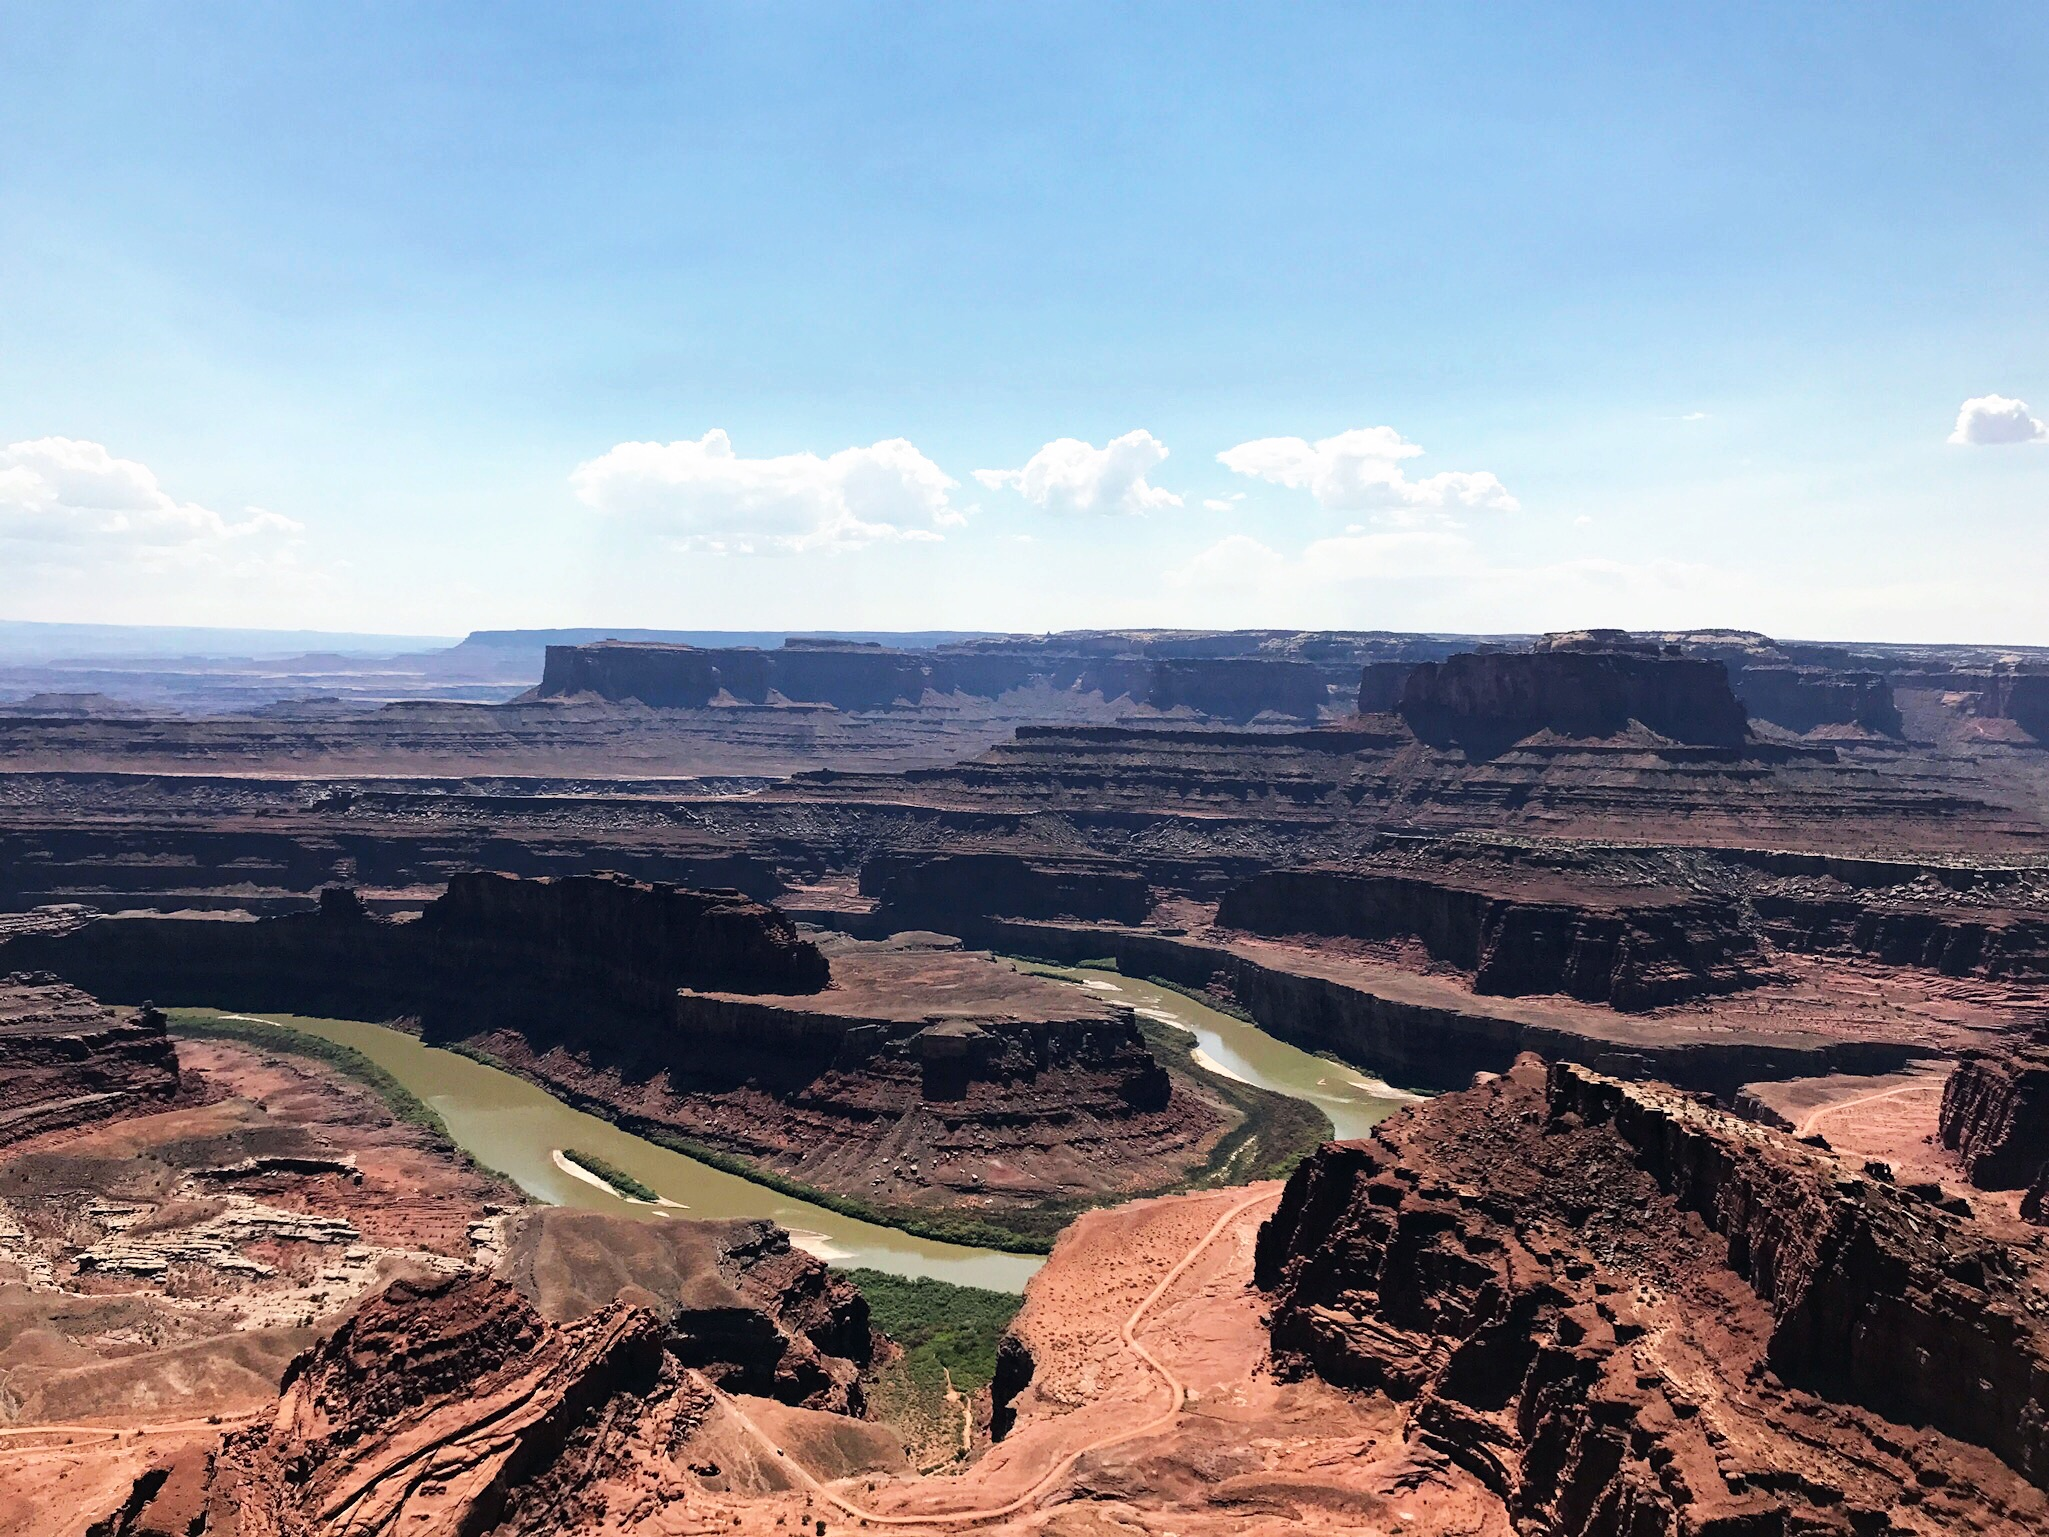 This view is from Dead Horse Point State Park, a short drive away from Canyonlands (I made a note about this above!)